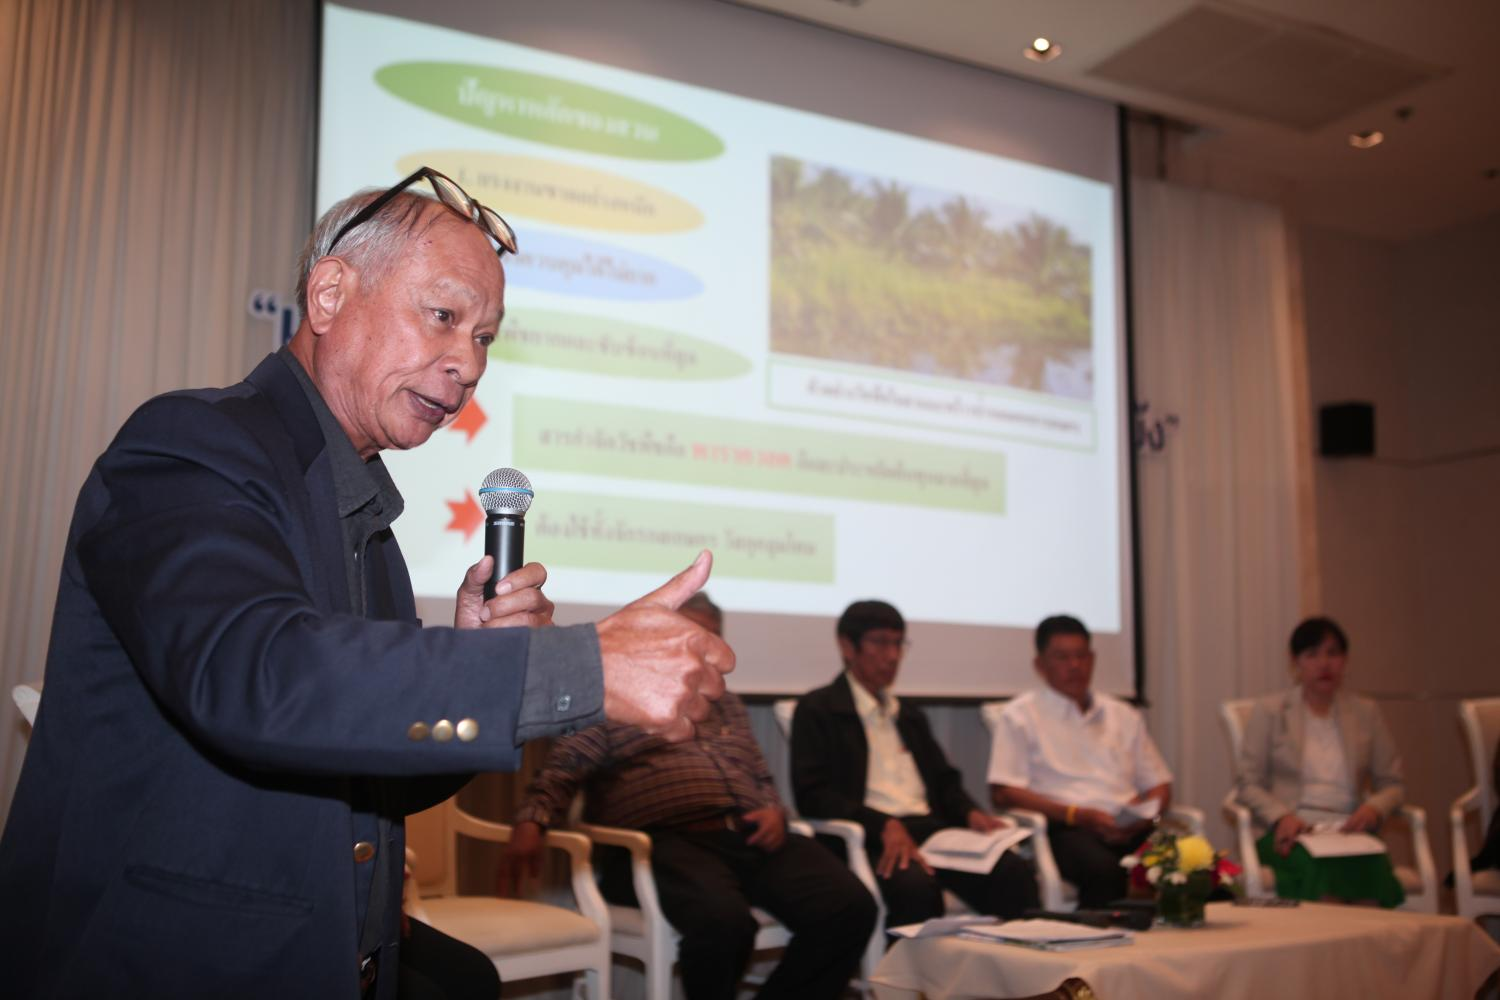 A speaker makes his point at a forum attended by the Thai Agricultural Innovation Trade Association, which has threatened to go to the Administrative Court if the three farm chemicals are banned.Apichart Jinakul